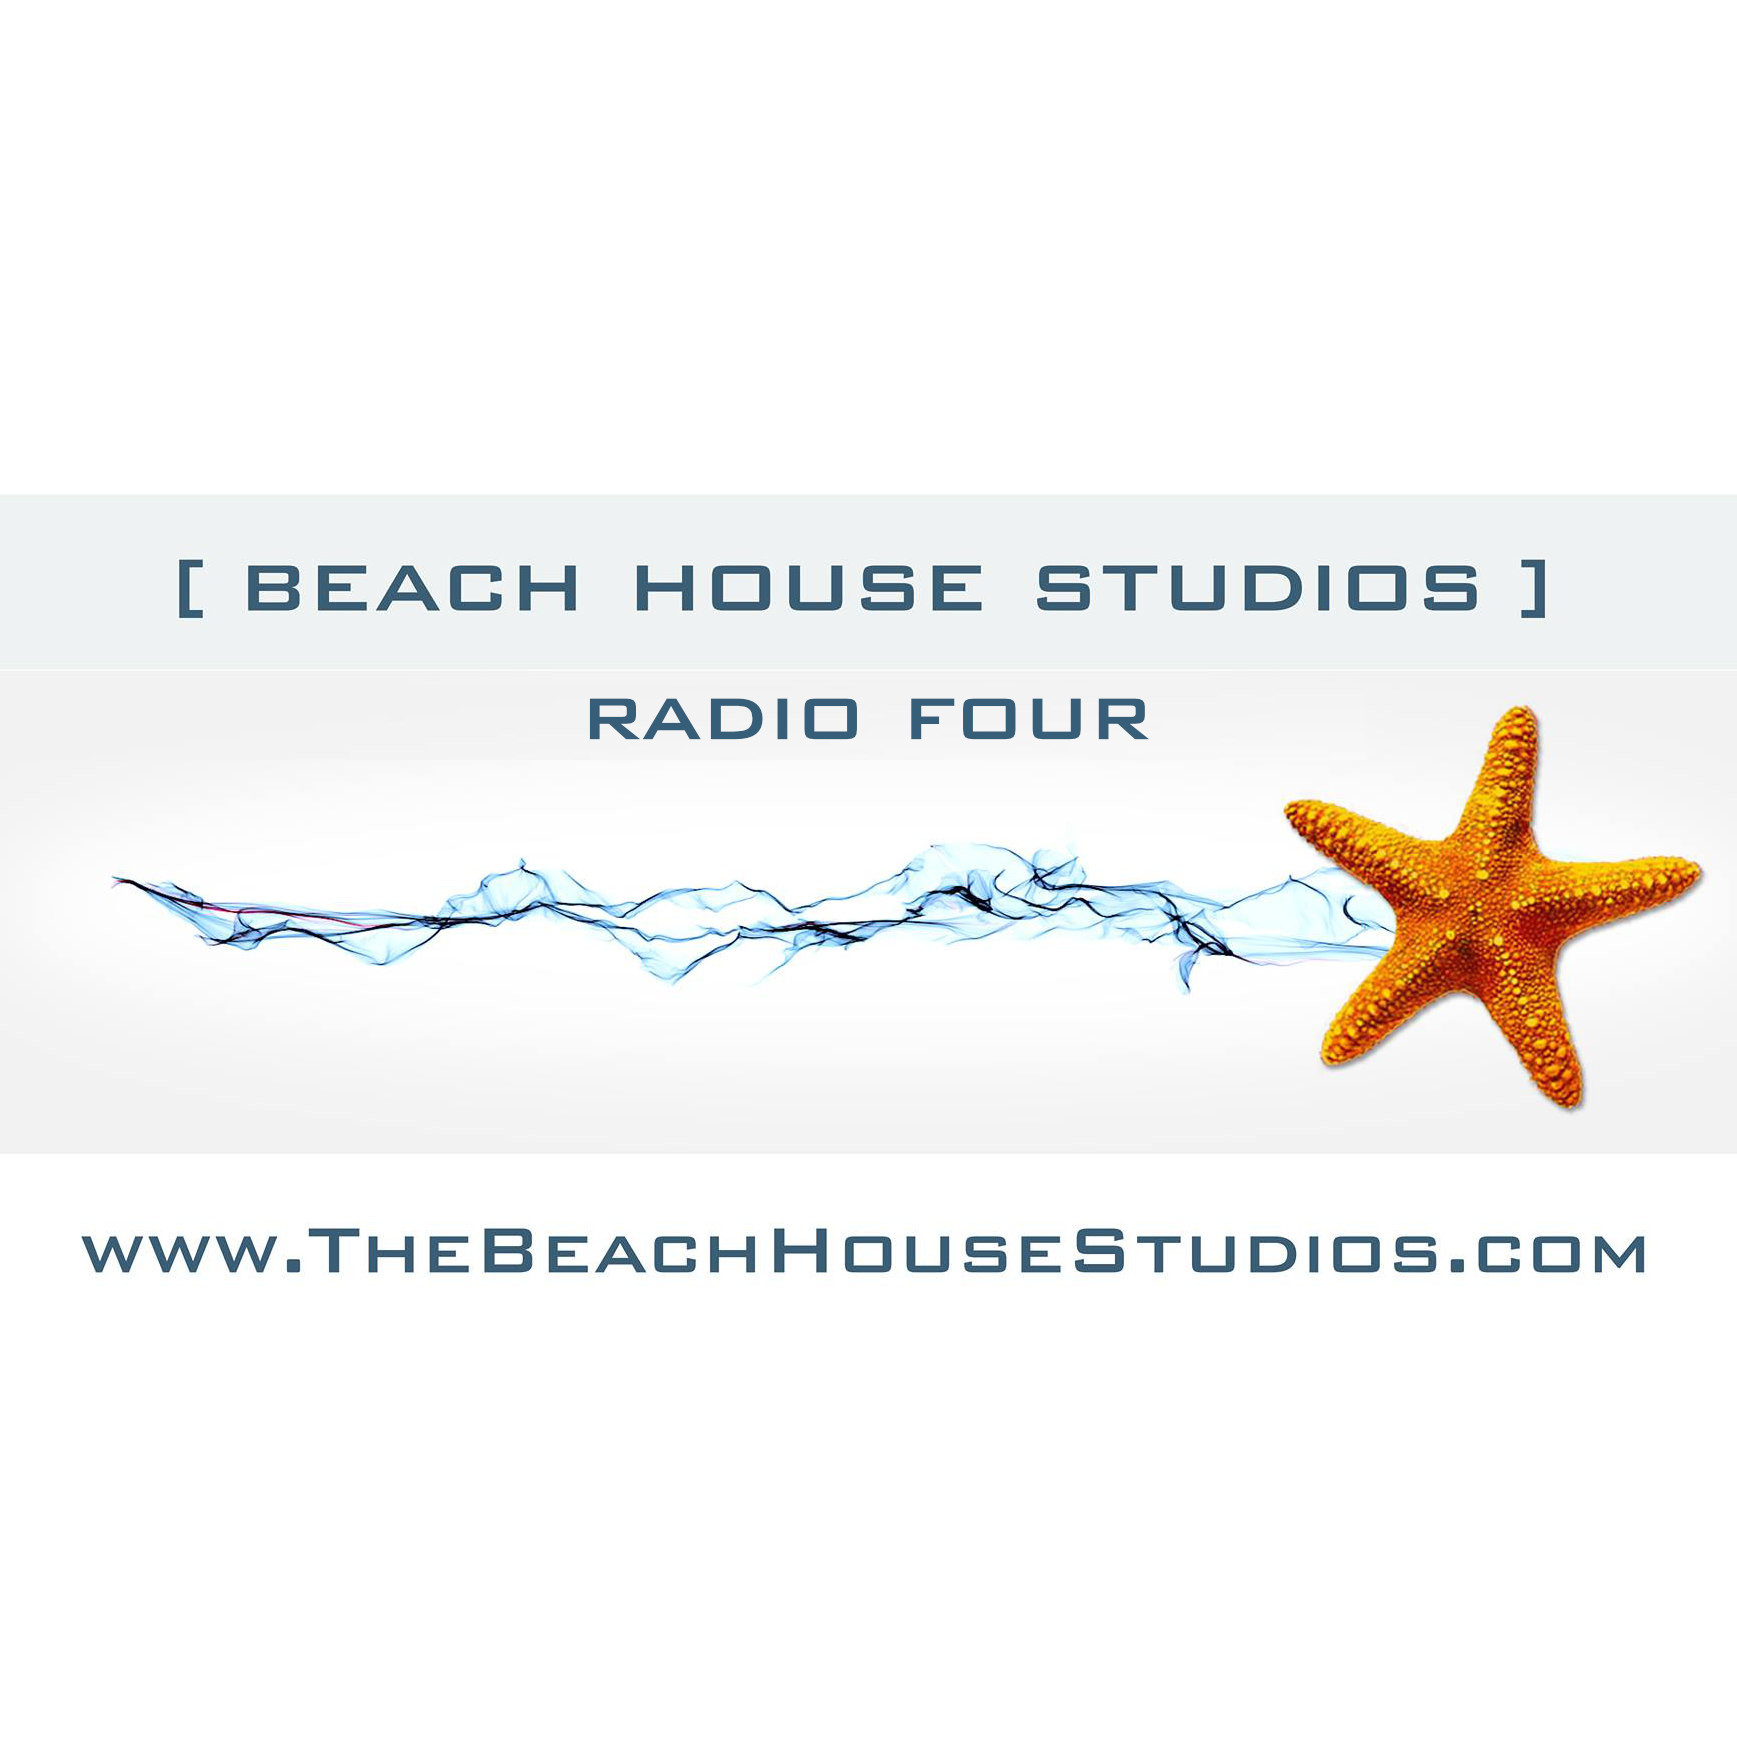 Beach House Studios Radio Four logo